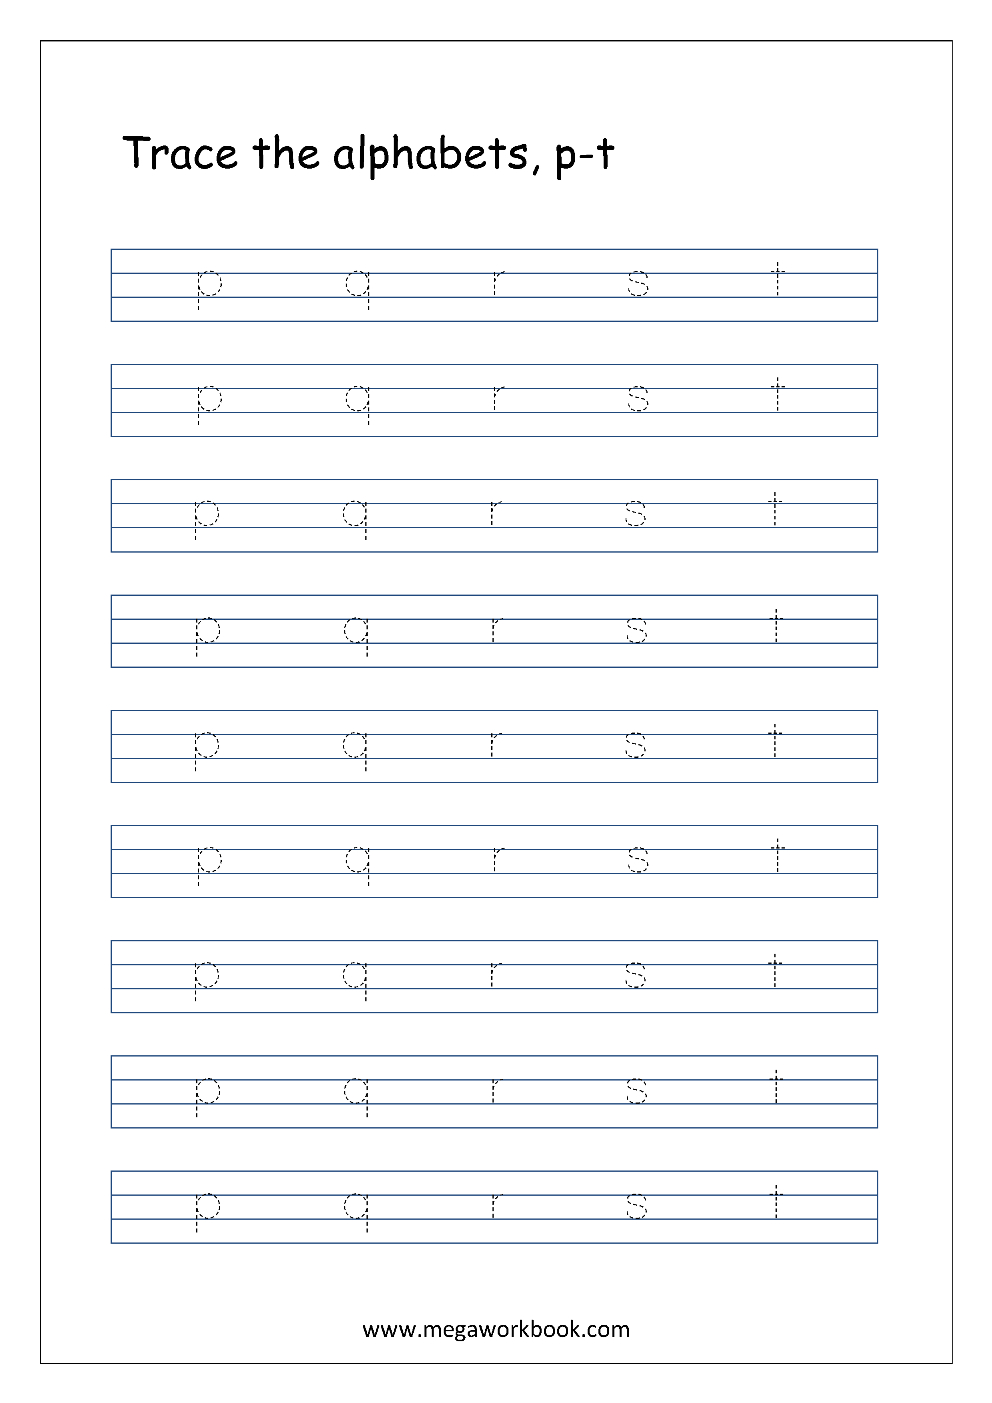 Free English Worksheets - Alphabet Tracing (Small Letters intended for Small Letters Alphabet Tracing Sheets